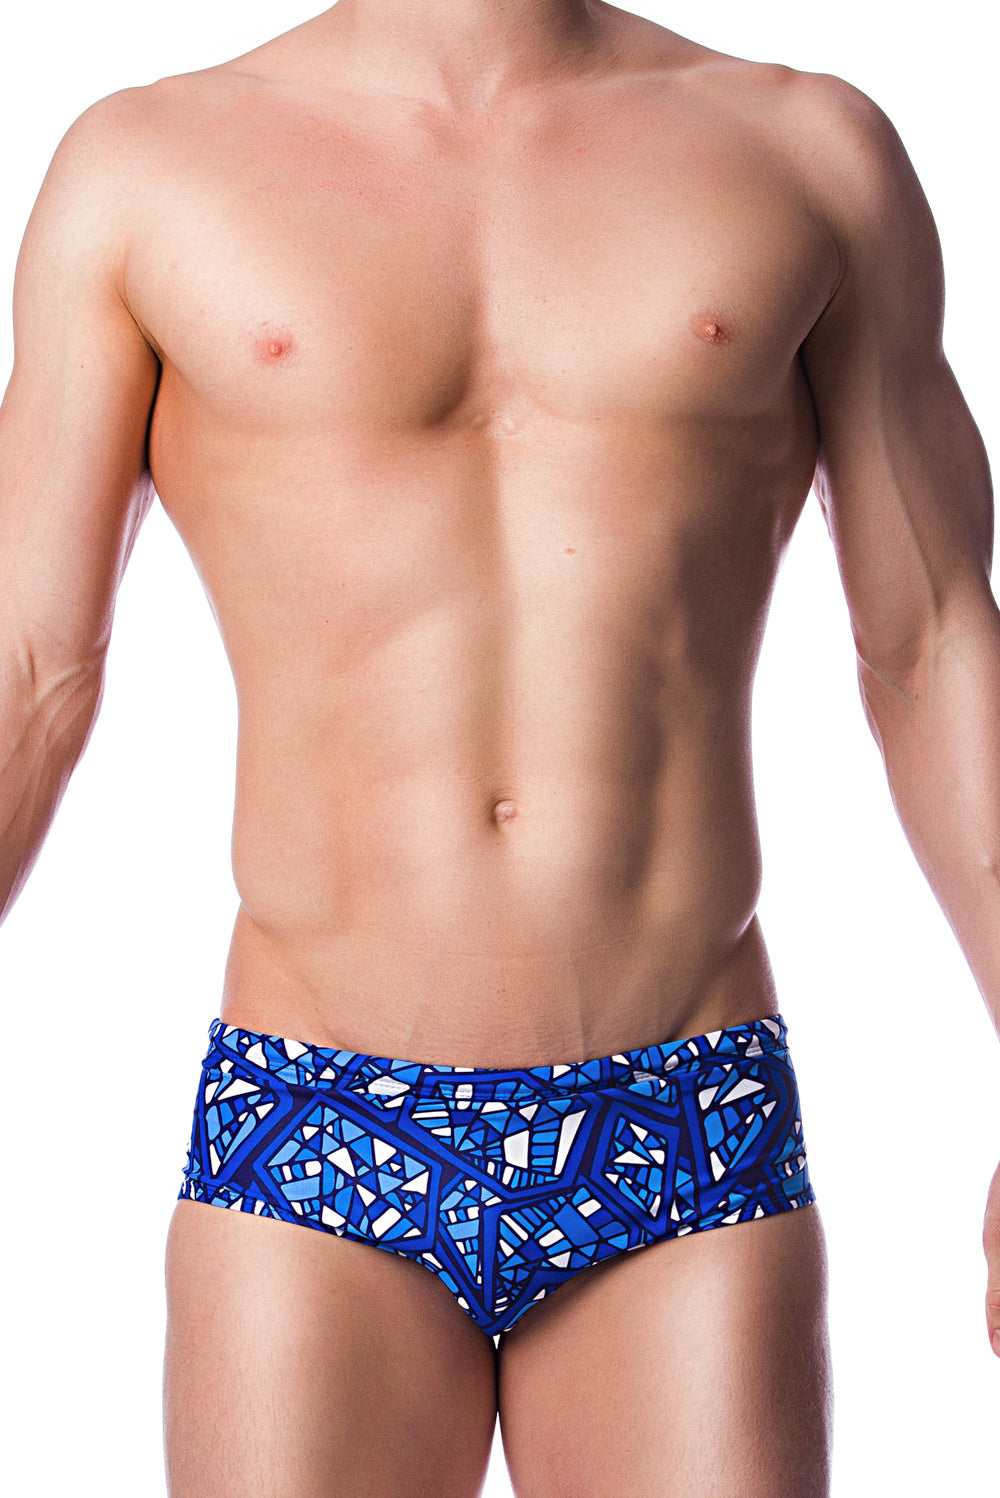 Day Break Men's Briefs - Shop Zealous Training Swimwear